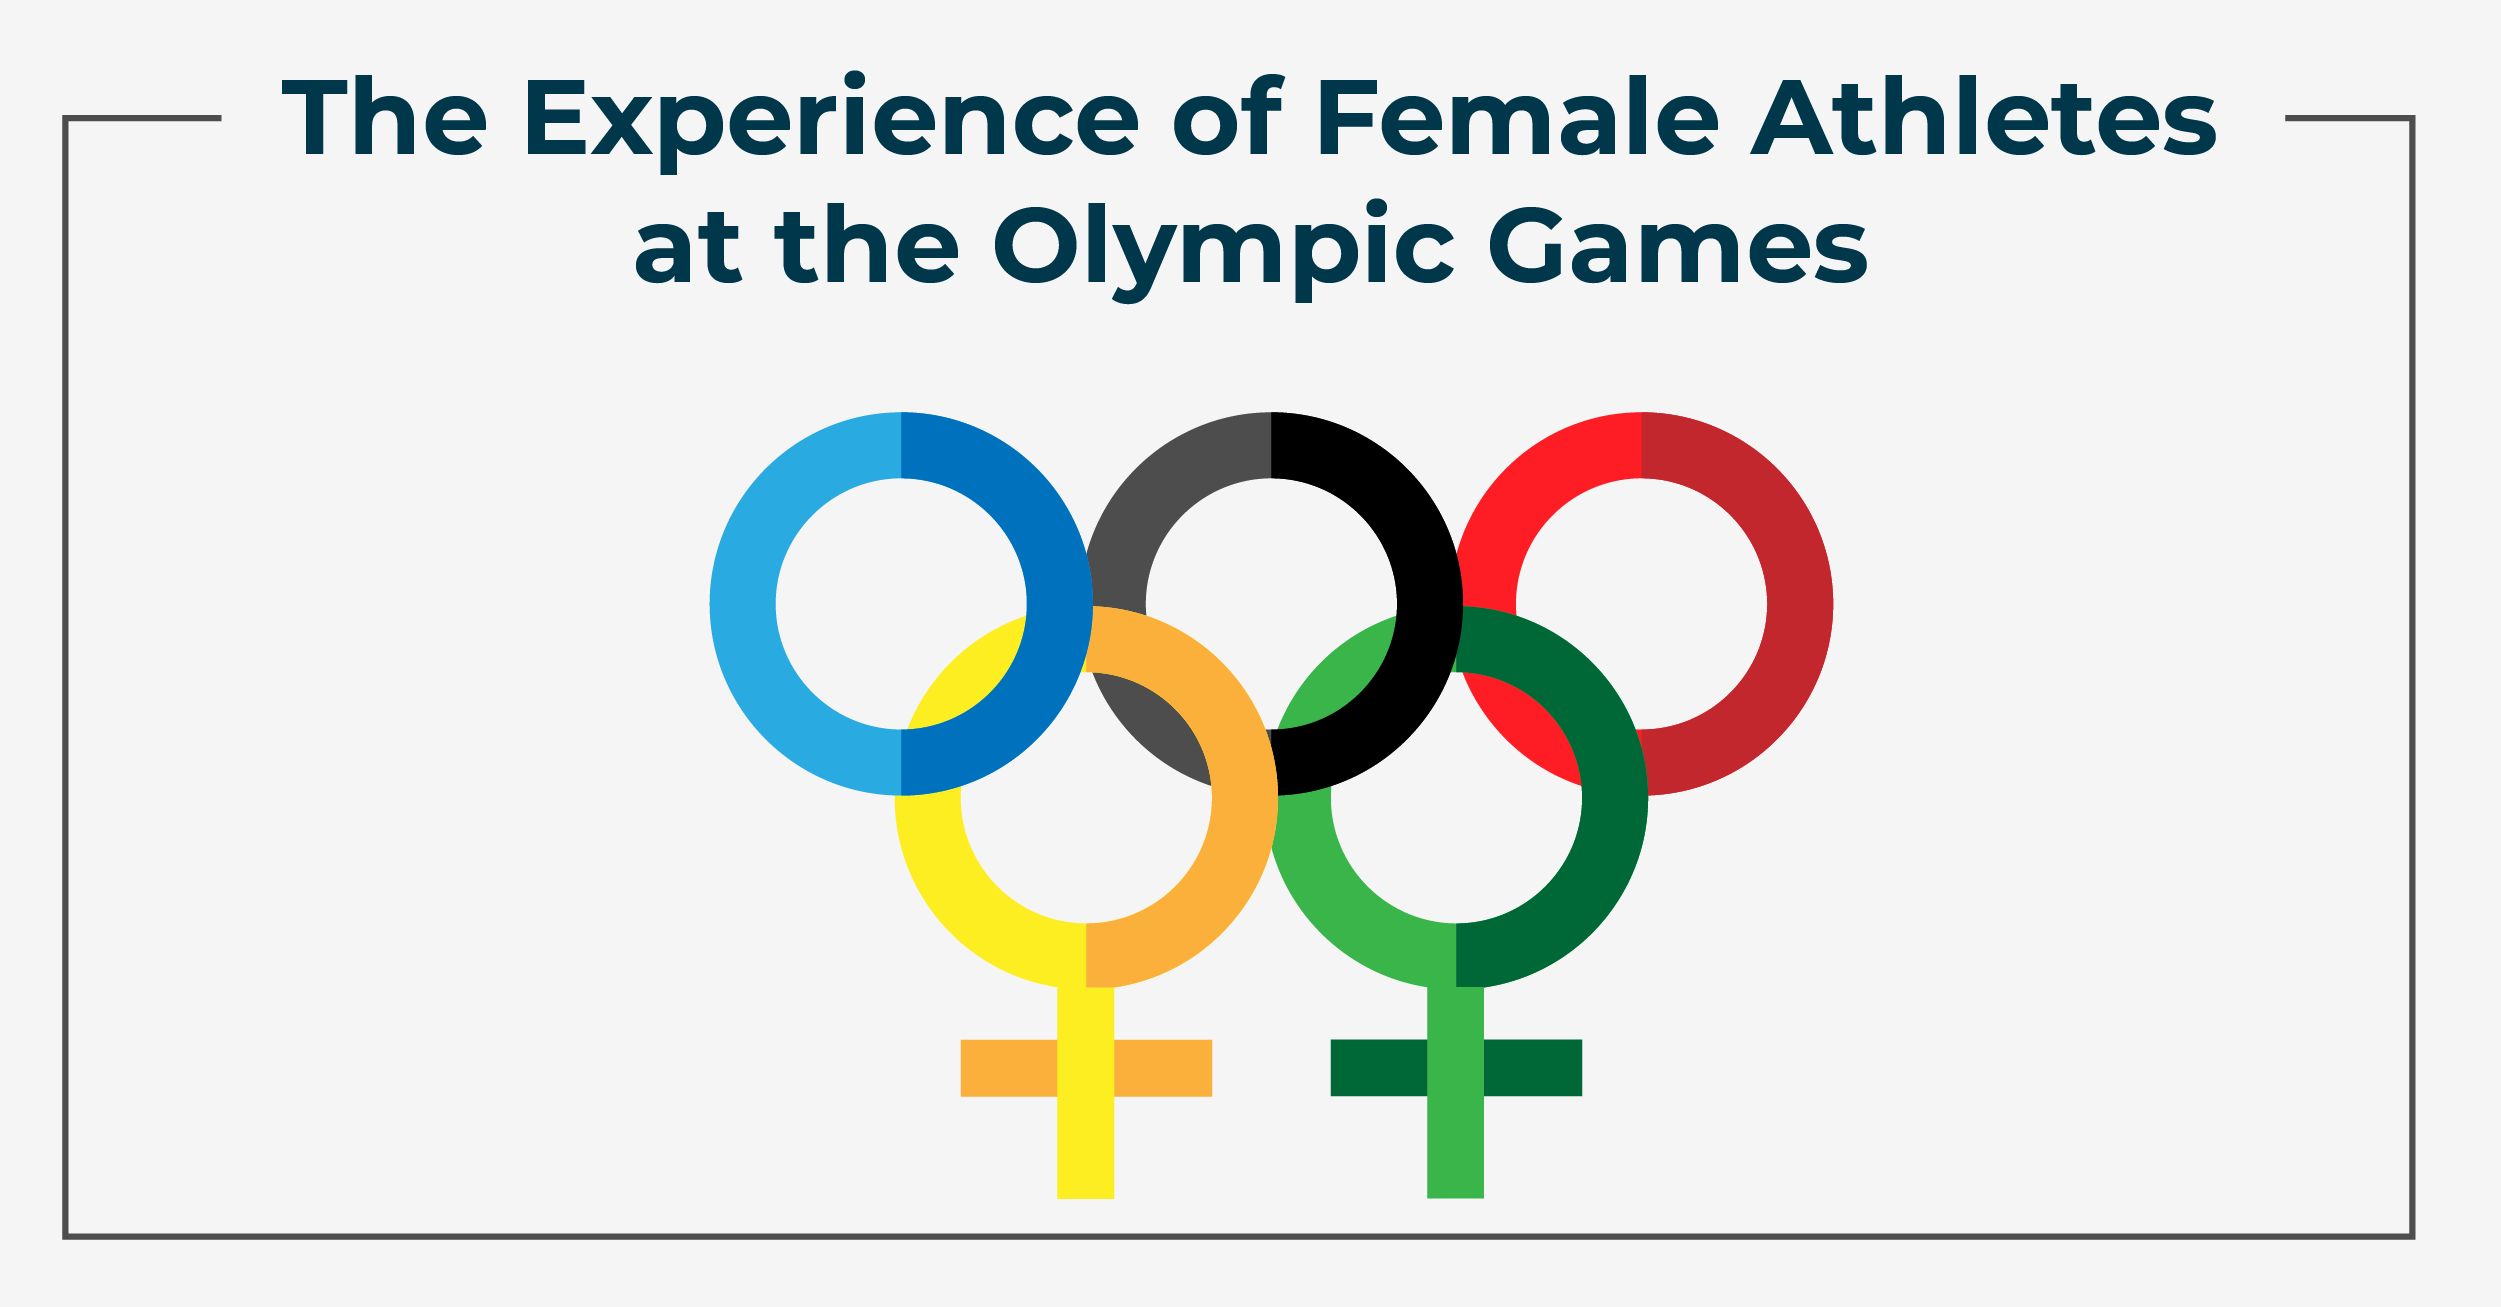 The Experience of Female Athletes at the Olympic Games